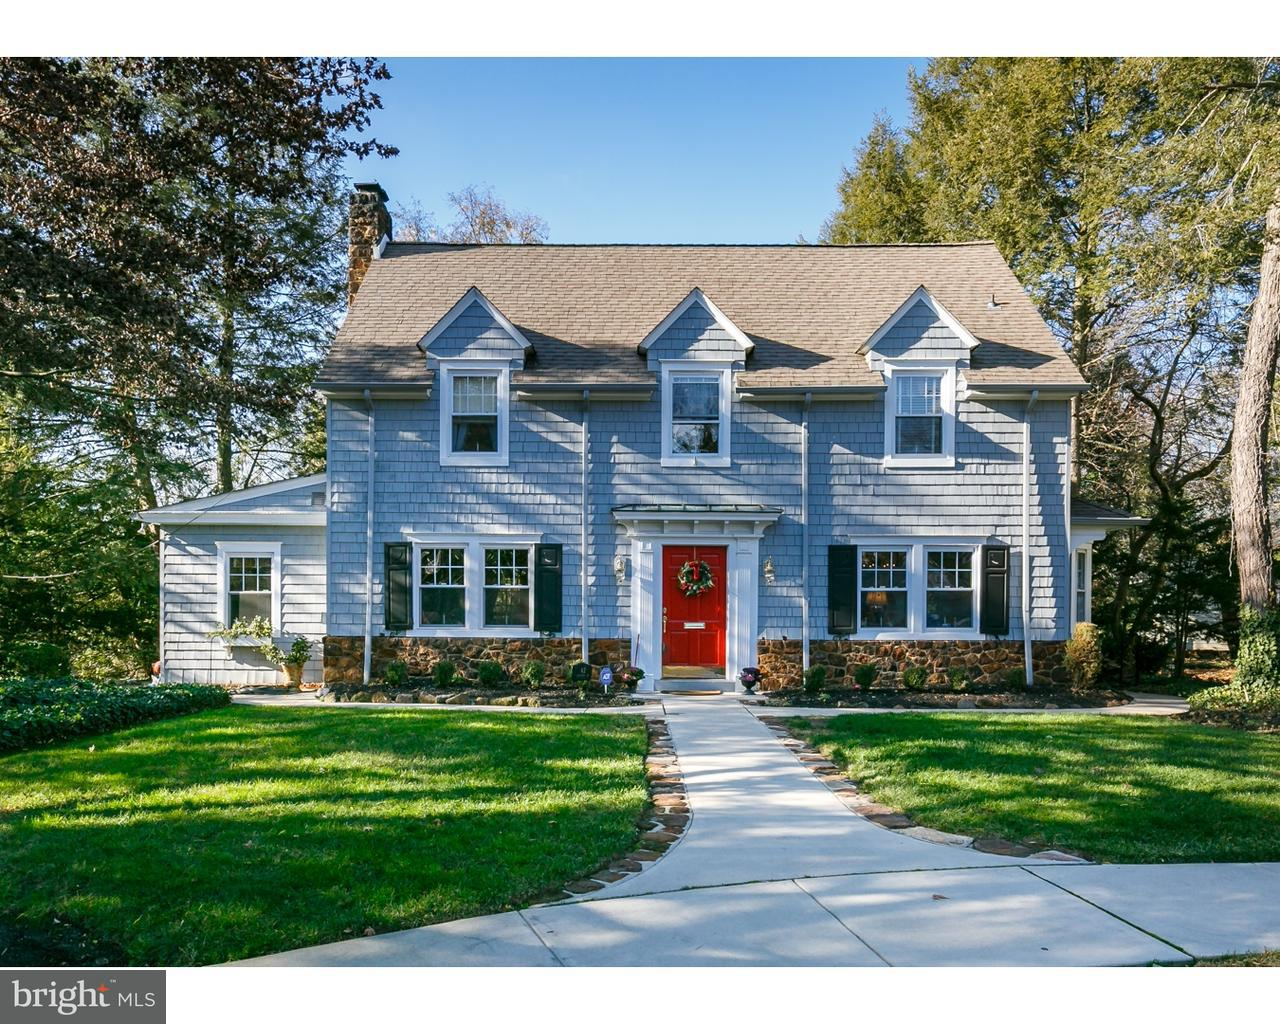 Single Family Home for Rent at 42 LAKEVIEW Drive Moorestown, New Jersey 08057 United States